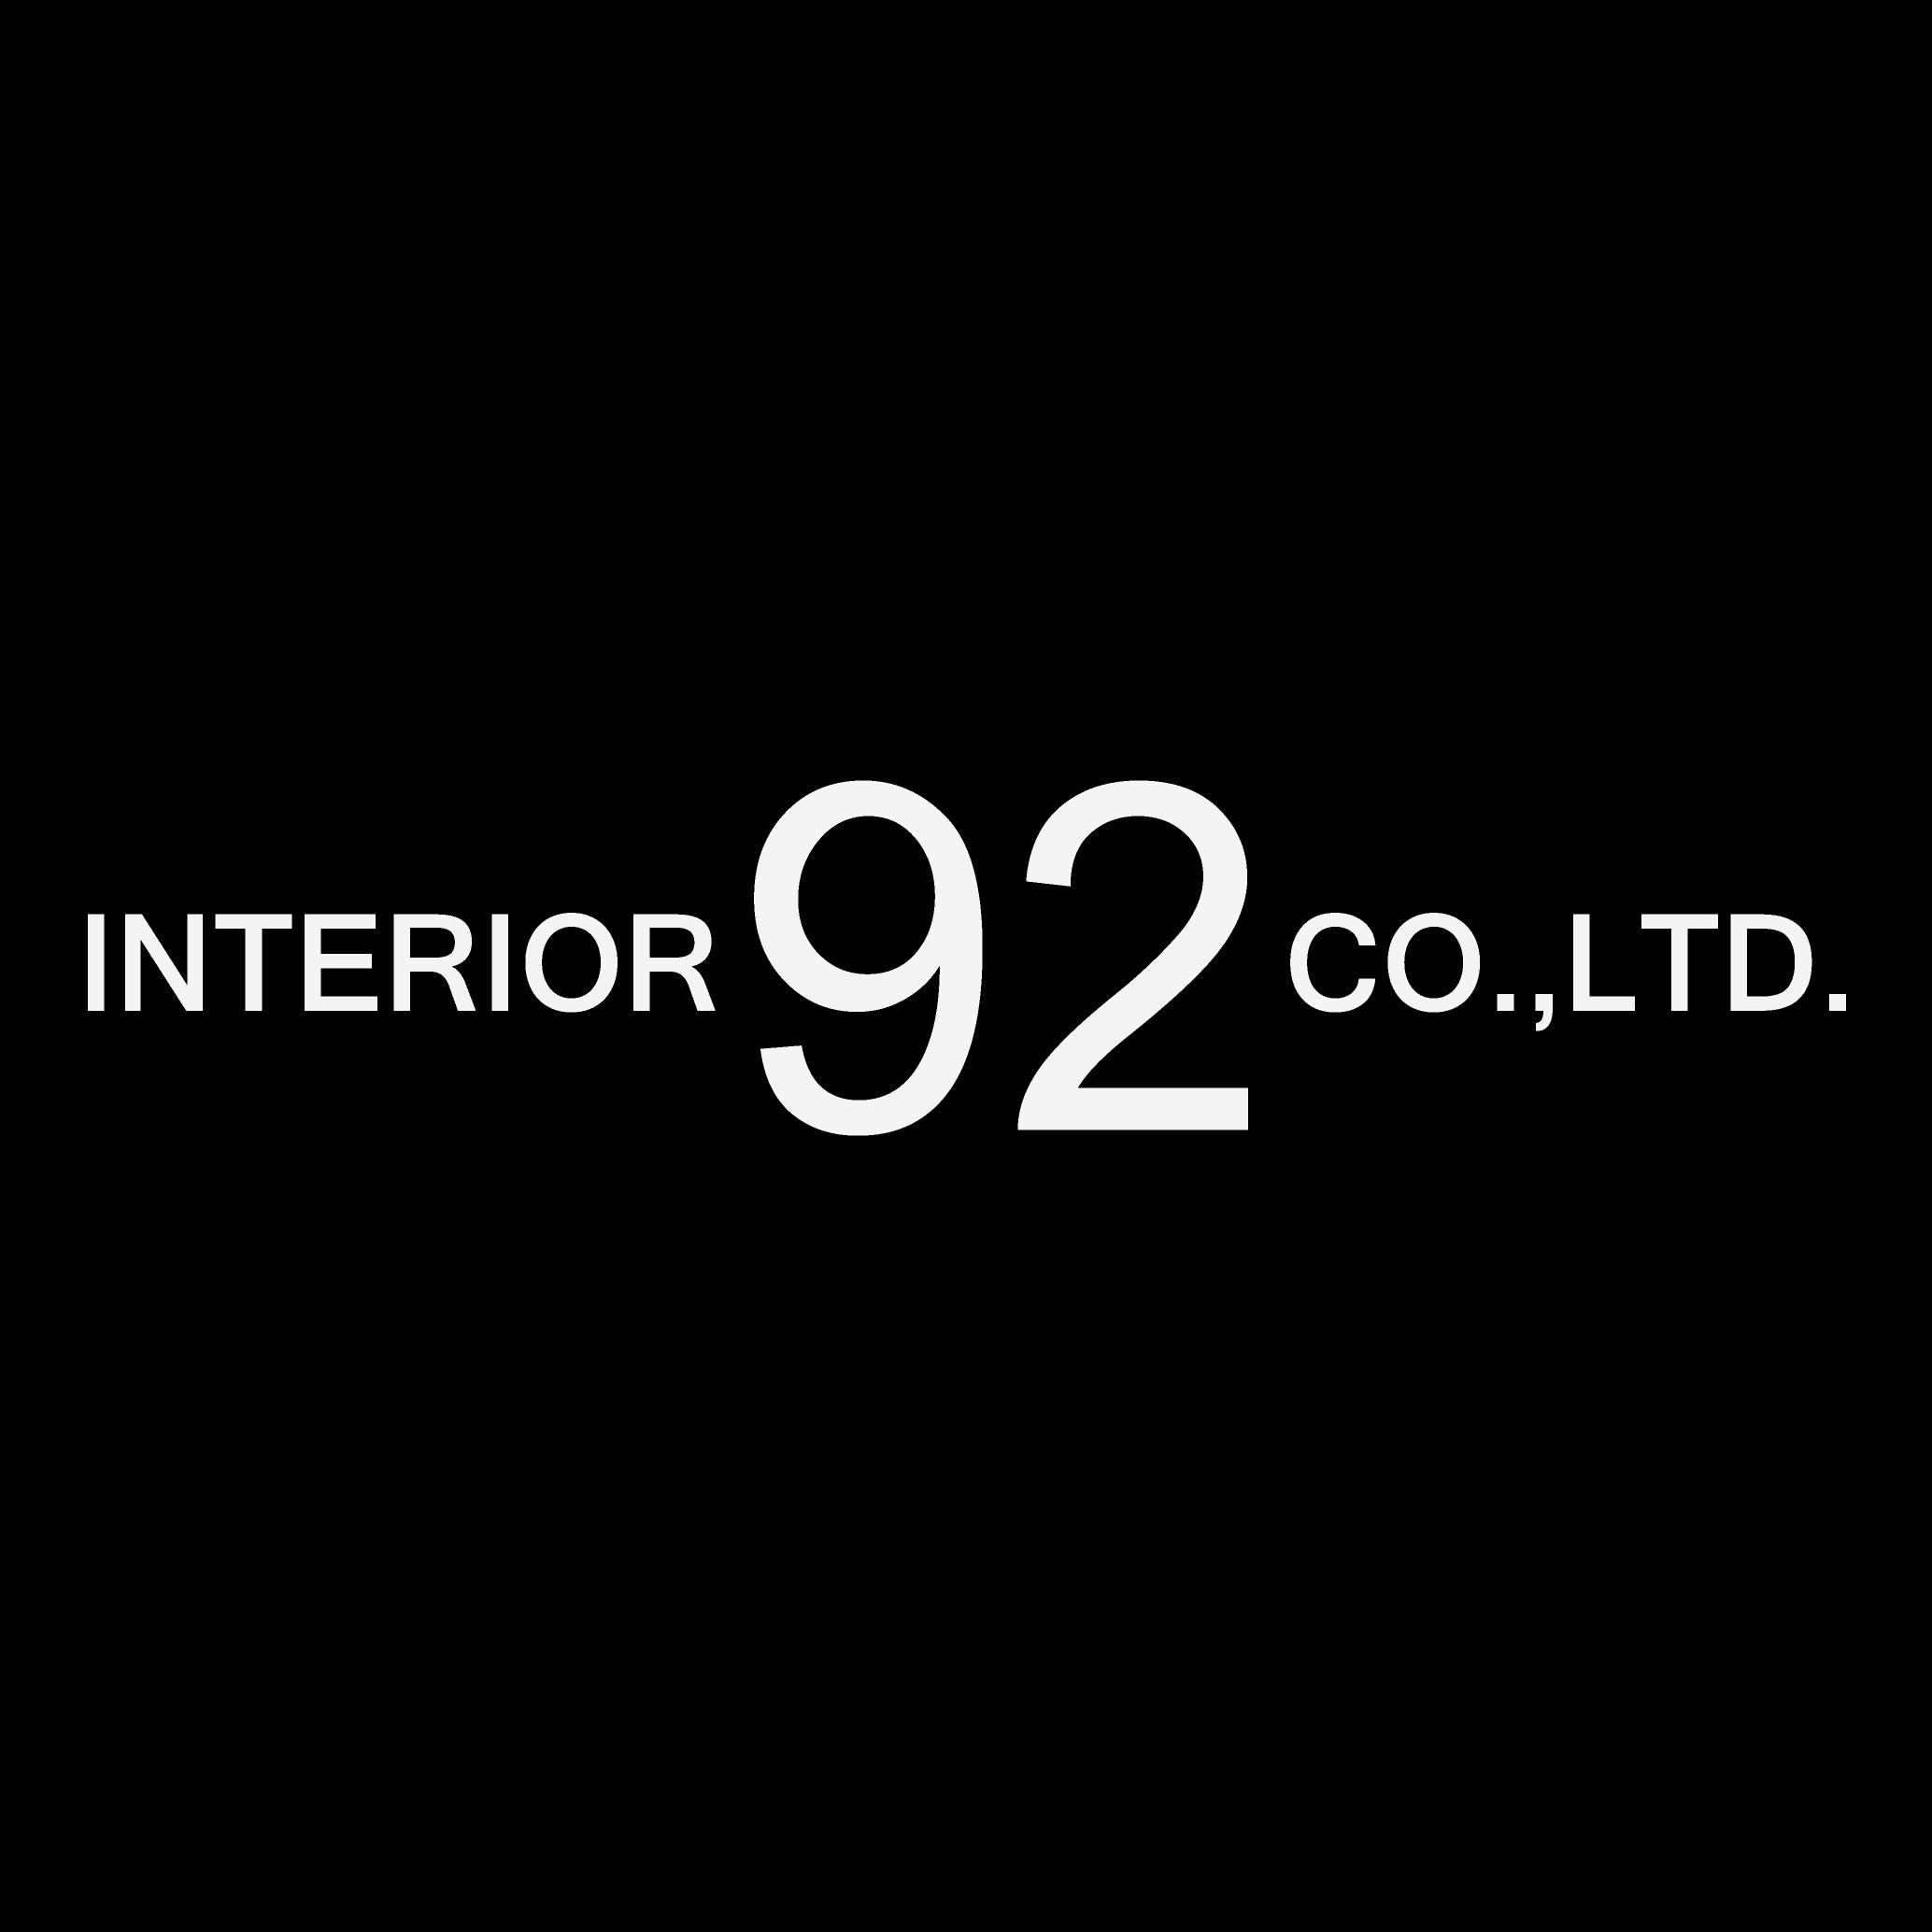 Interior 92 Co.,Ltd.